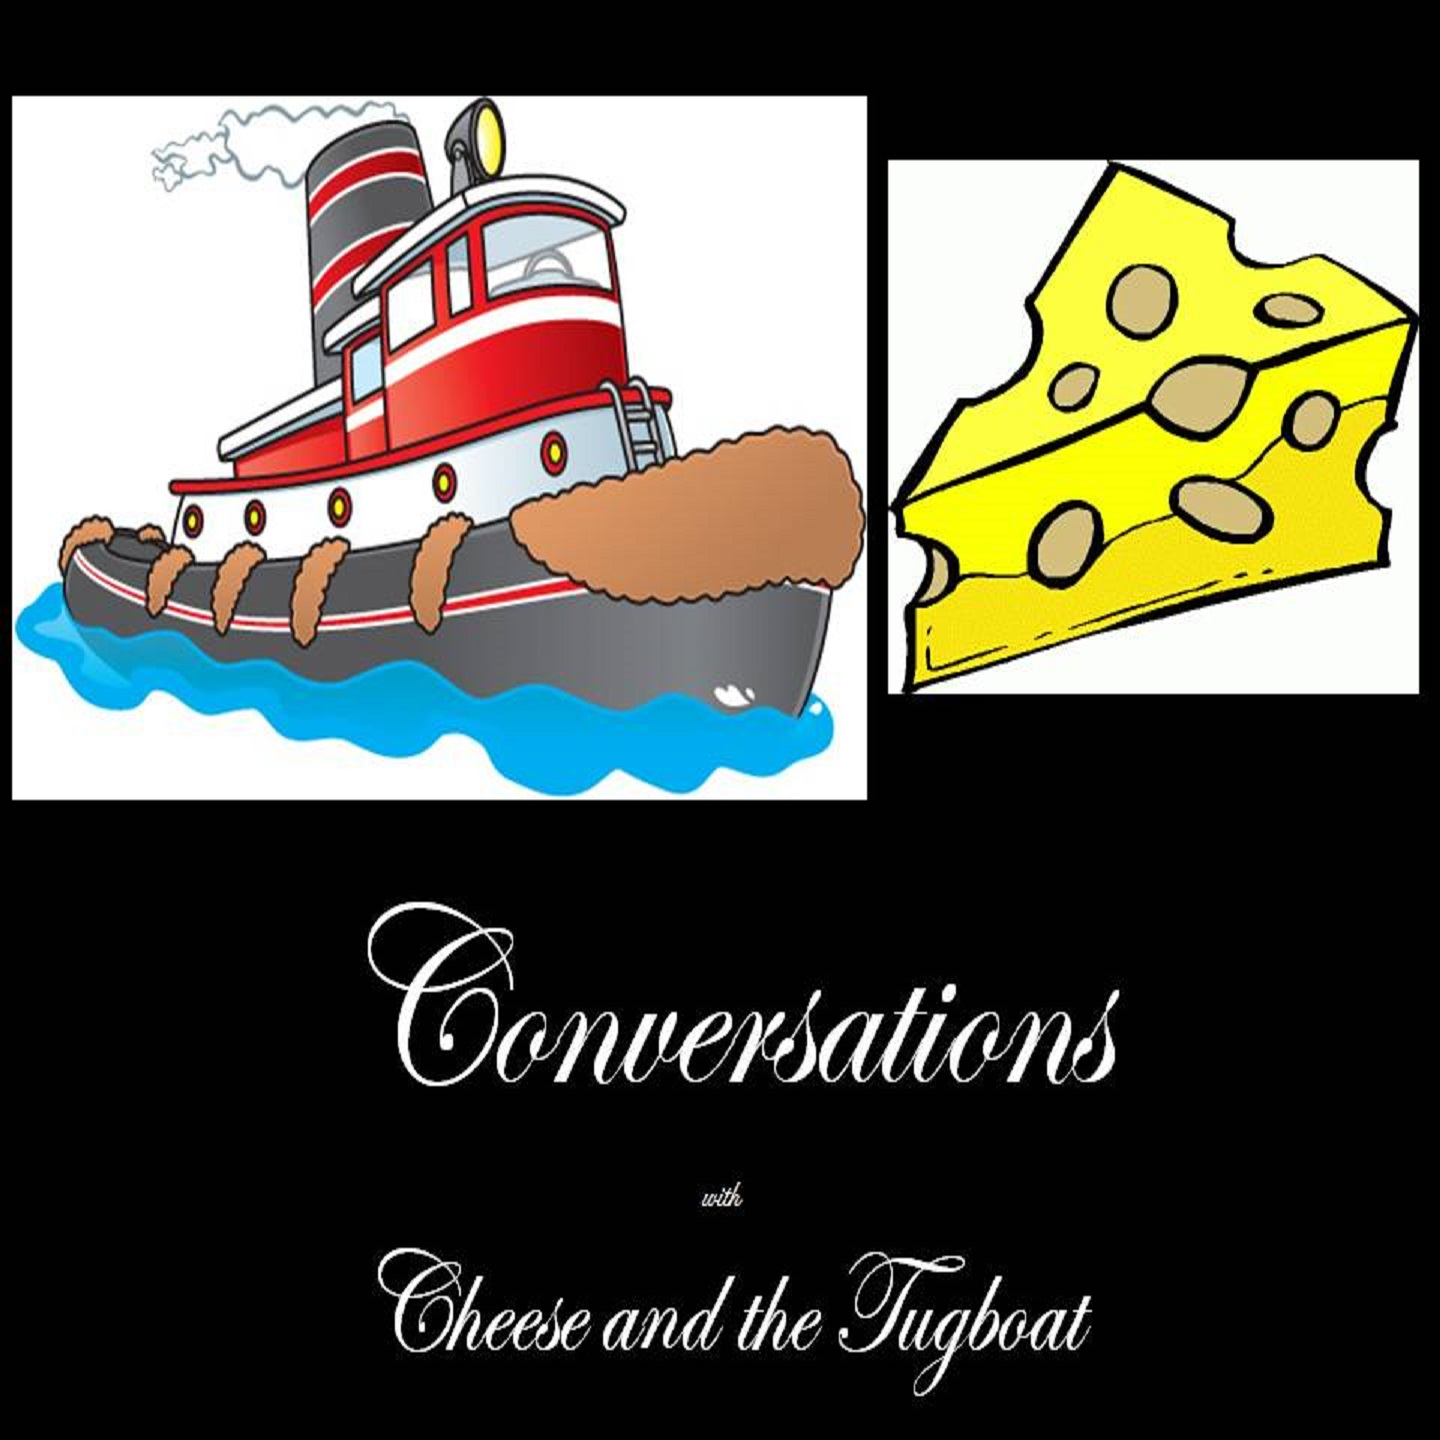 Conversations with Cheese and the Tugboat - The Tugboat